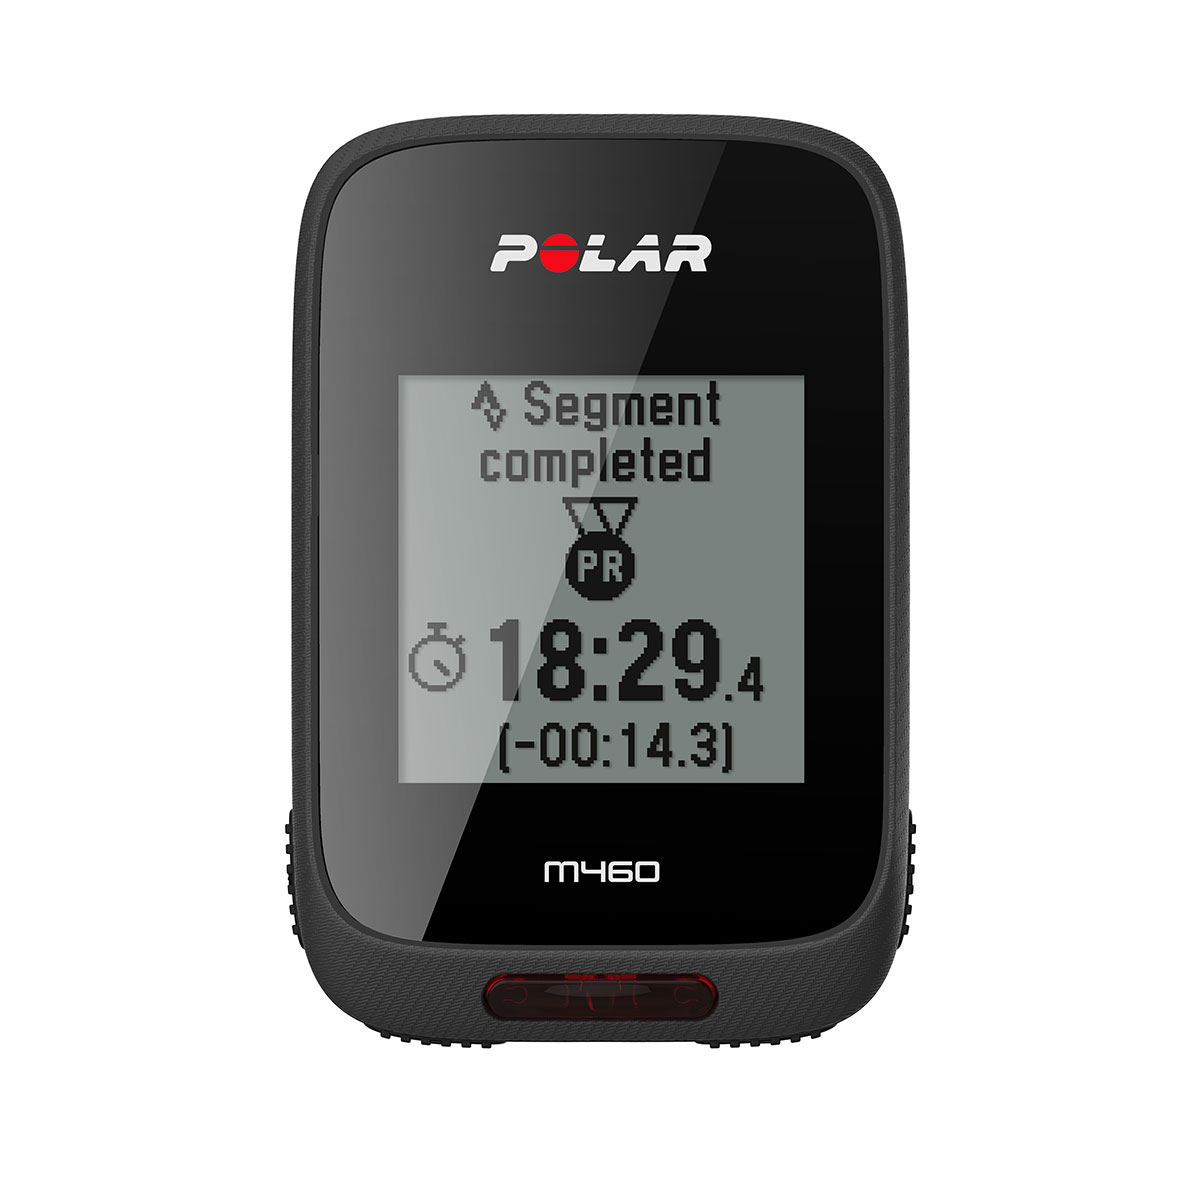 Polar cykelcomputer med GPS - M460 | Cycle computers